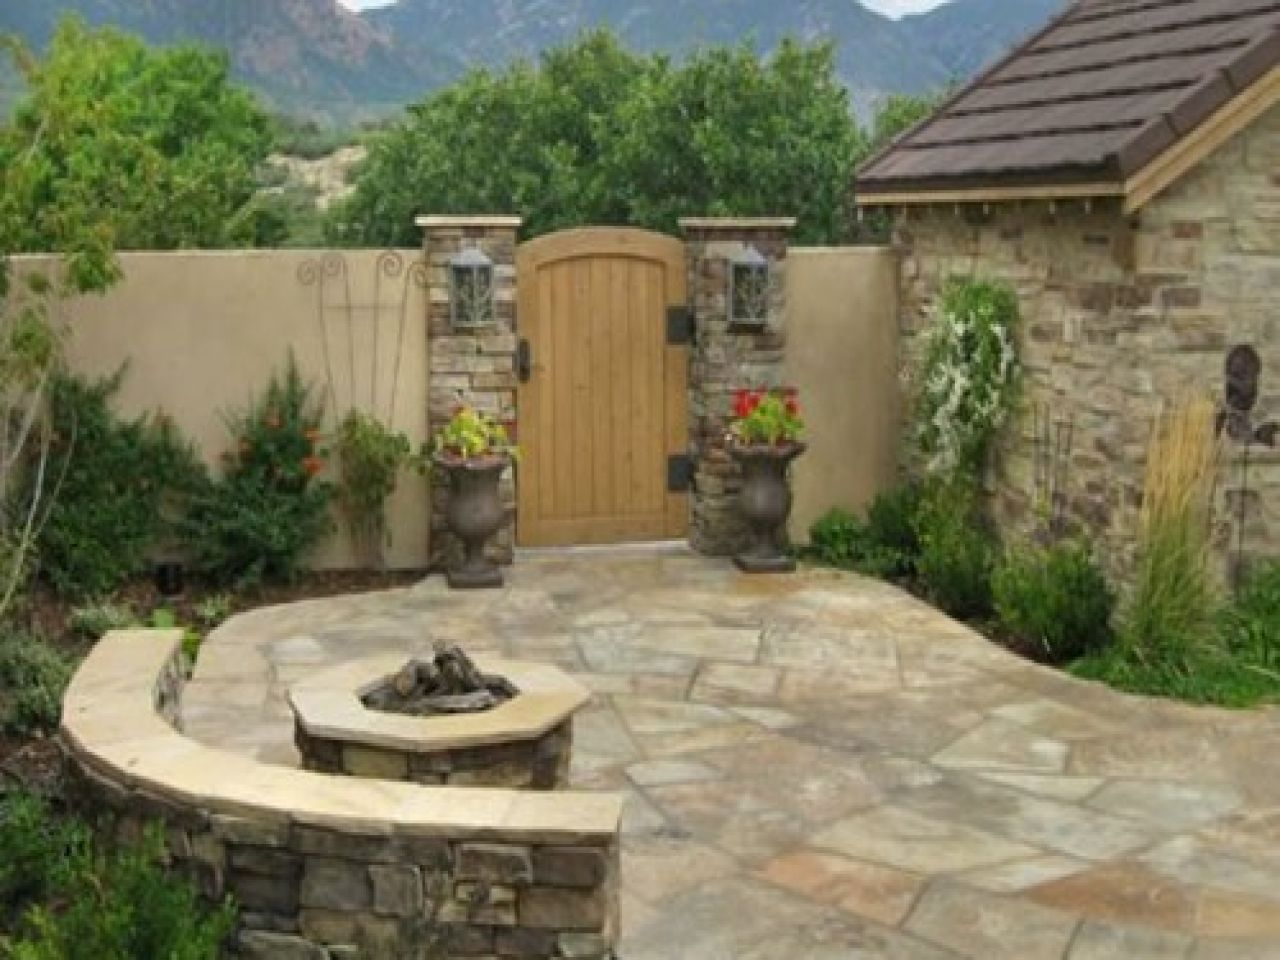 Flagstone Patio For Decorating Your Porch Floor: Rock Flagstone Patio With  Round Stone Fire Pit